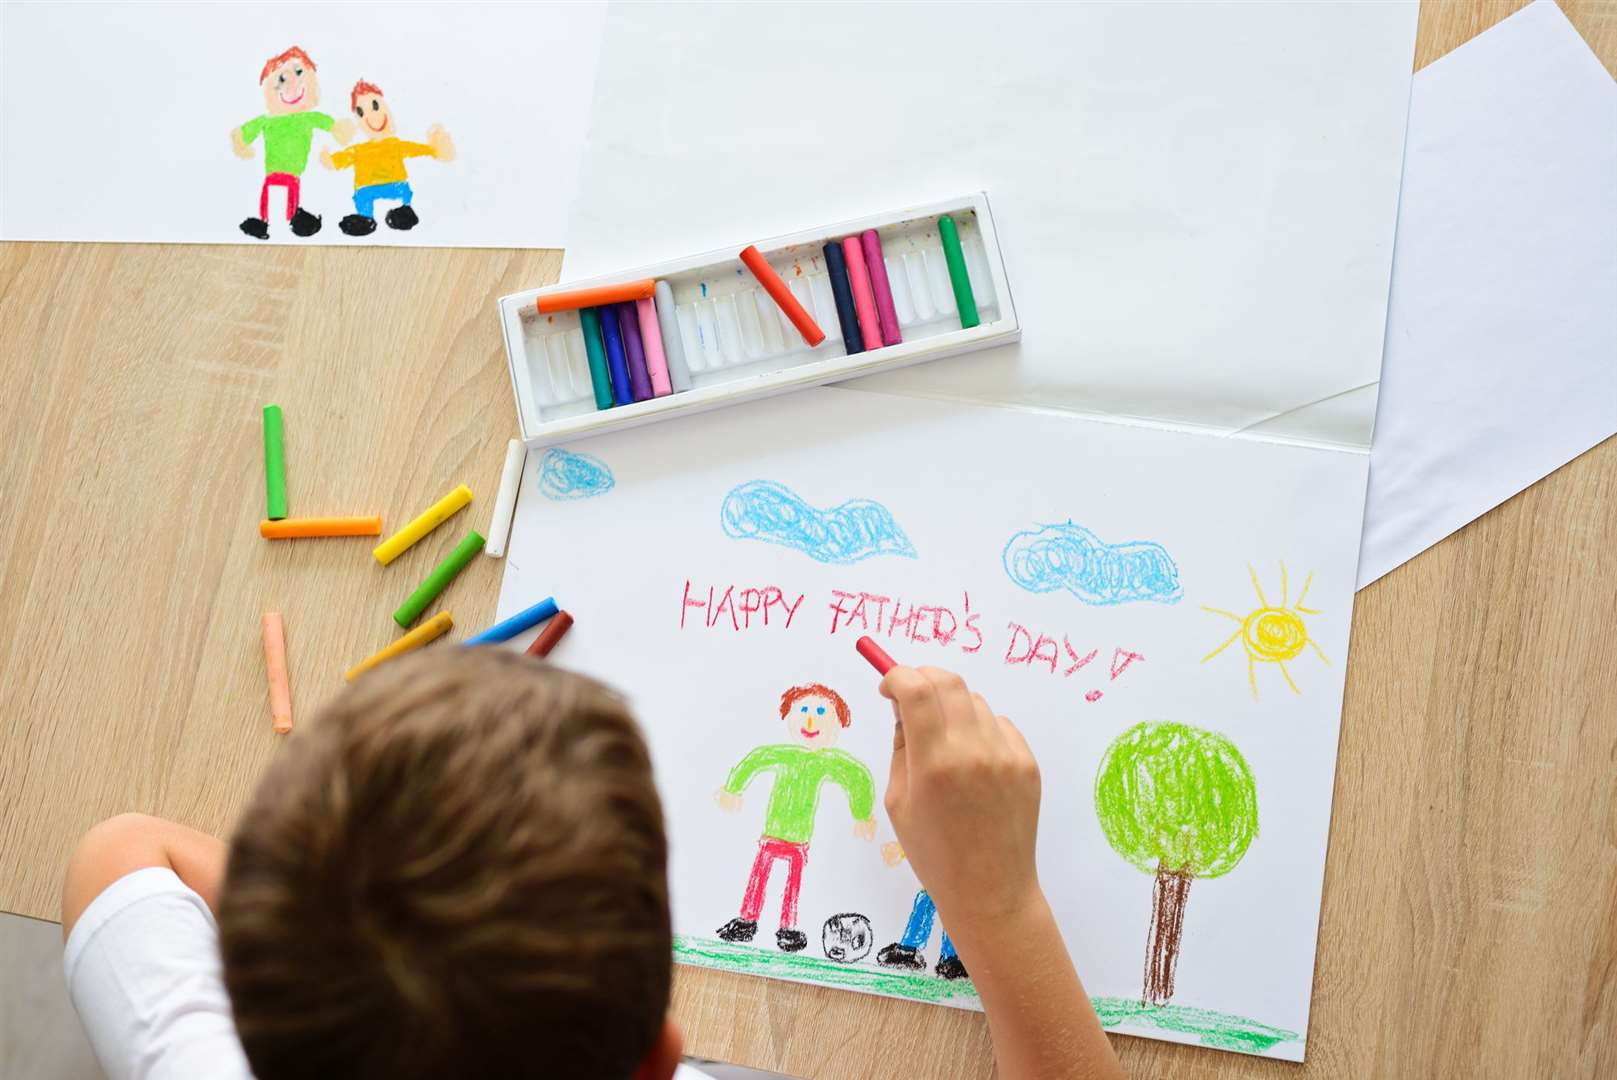 Children have been drawing pictures for Father's Day